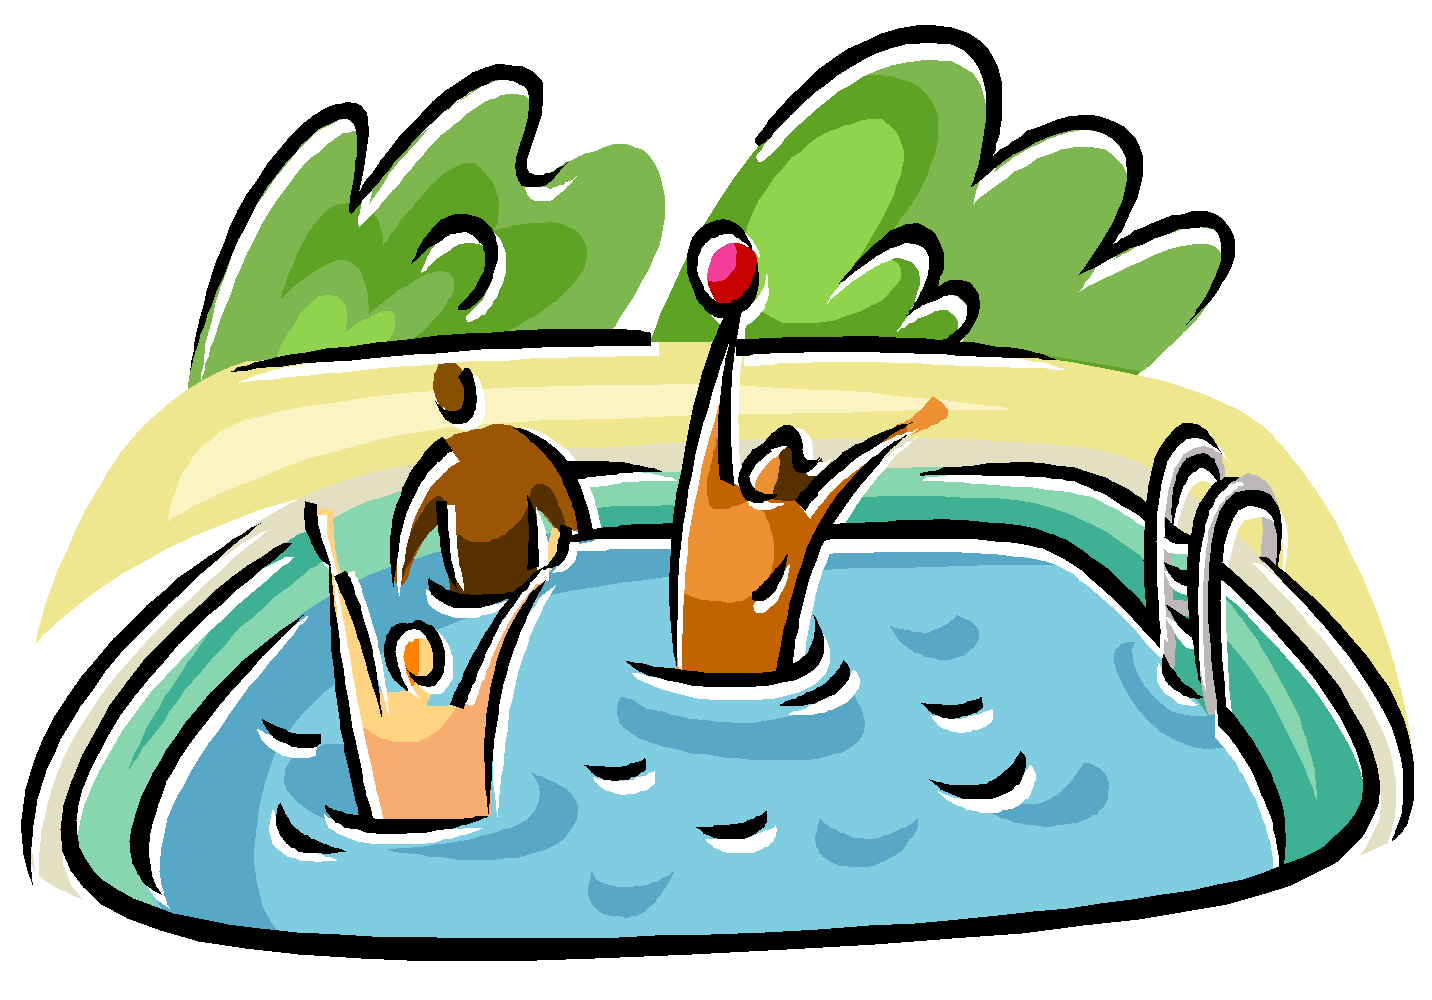 Swimming In A Pool Clipart Clipart Best-Swimming In A Pool Clipart Clipart Best-7